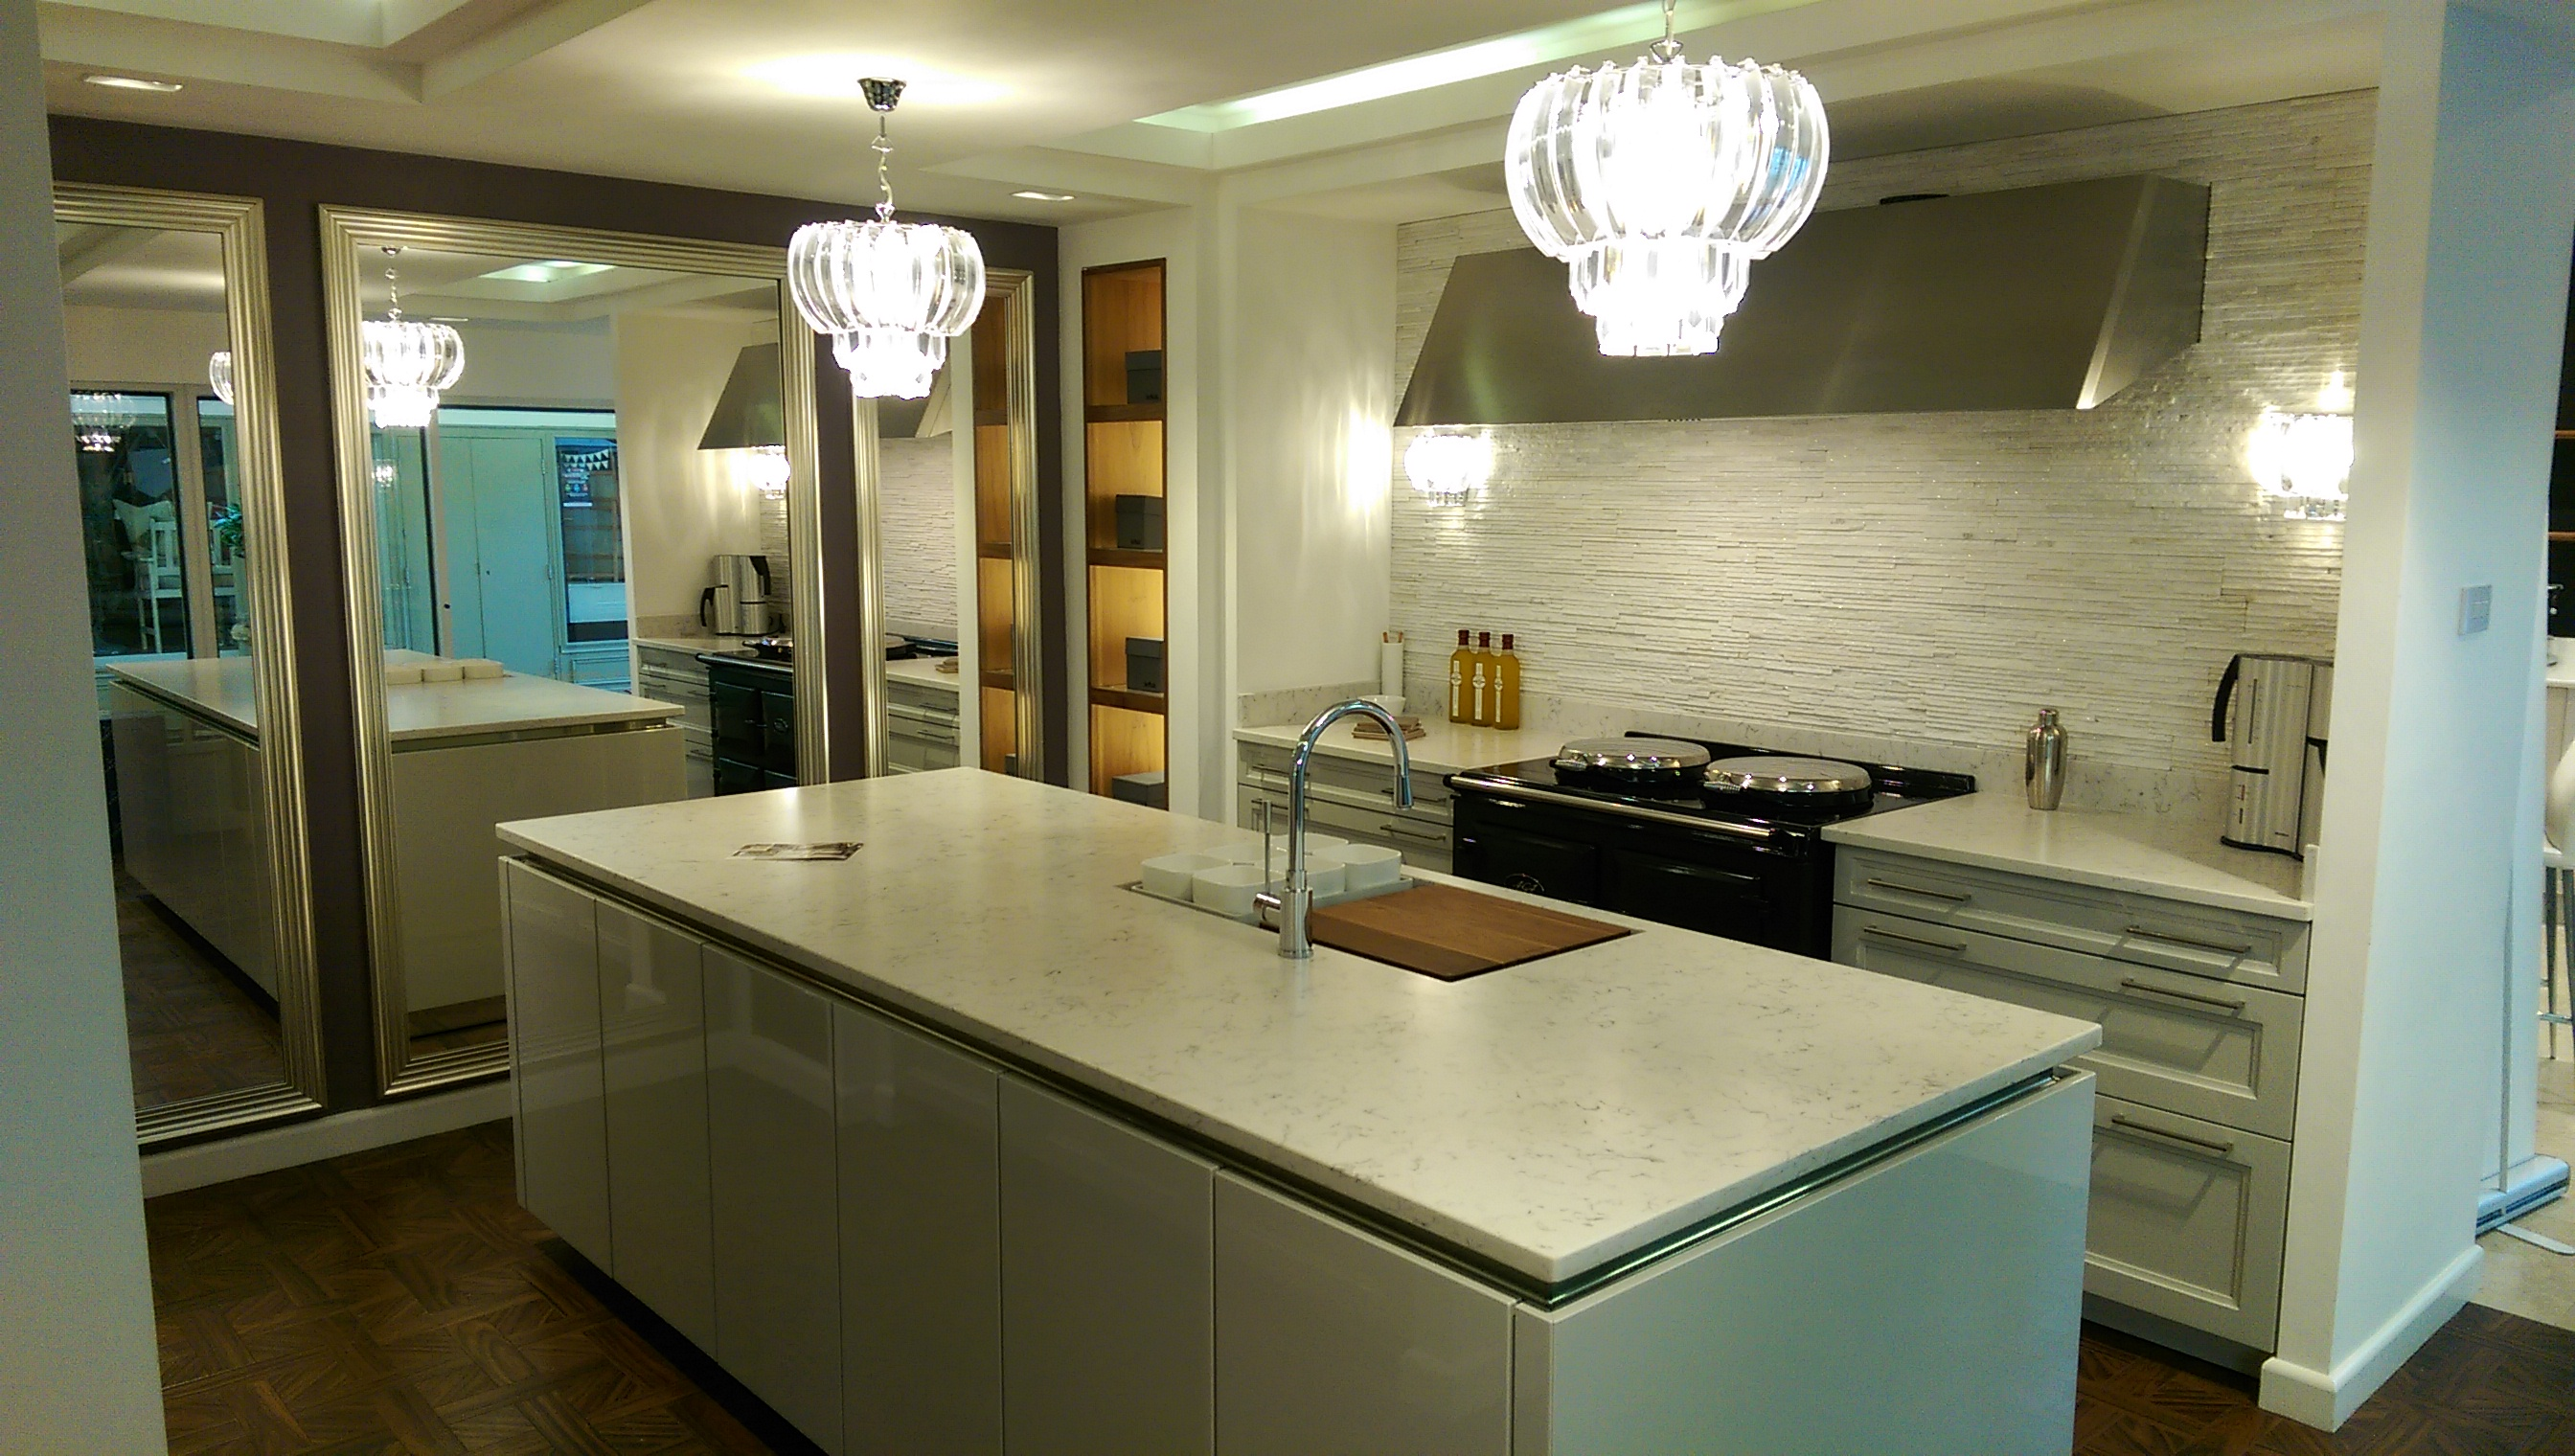 Siematic Kitchen Displays For Sale